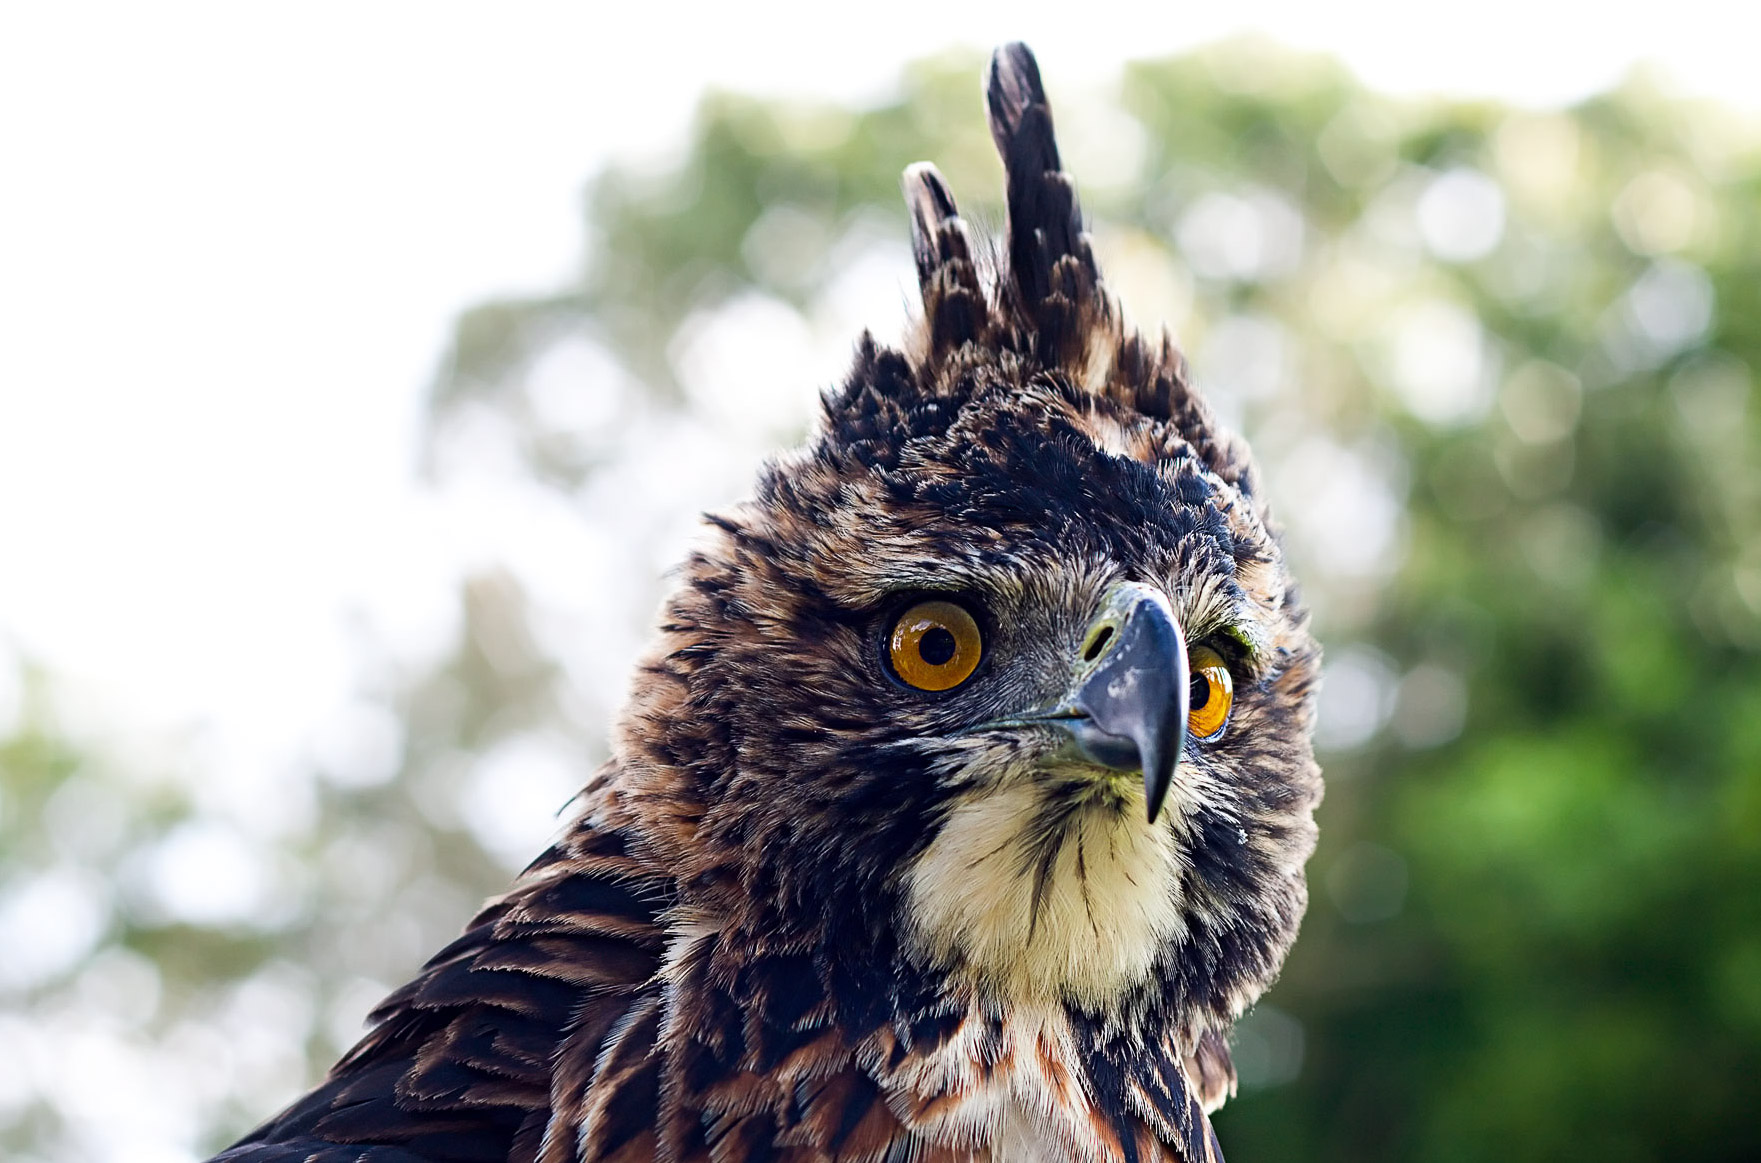 Ornate Hawk-Eagle. Photo credit: Santiago Restrepo Calle (Flickr / CC BY-NC-ND 2.0)